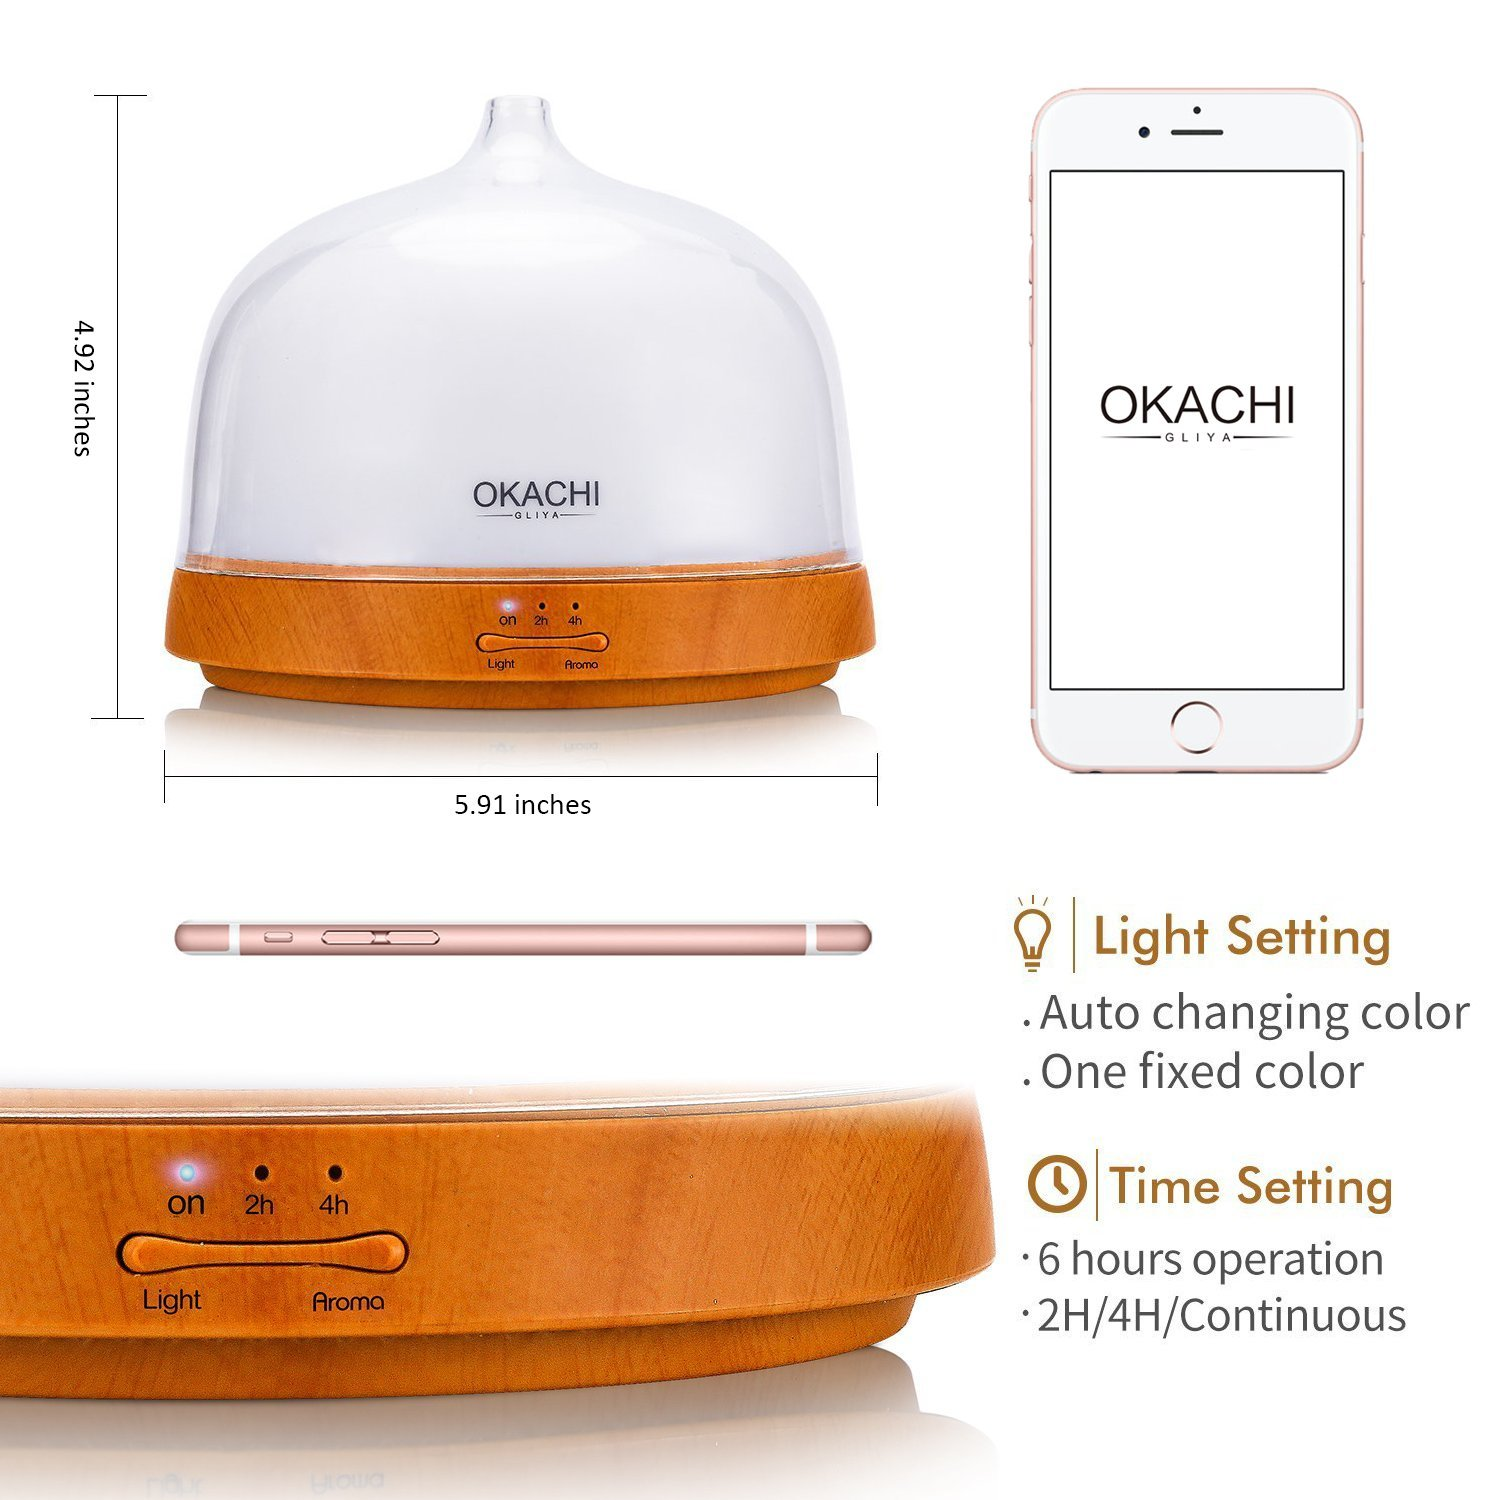 Essential Oil Diffuser Okachi Gliya Cool Mist Setting Engine Belt Diagram 3 1 Adjustment Aroma Humidifier For Aromatherapy Bpa Free Timer Waterless Auto Shut Off 7 Color Led